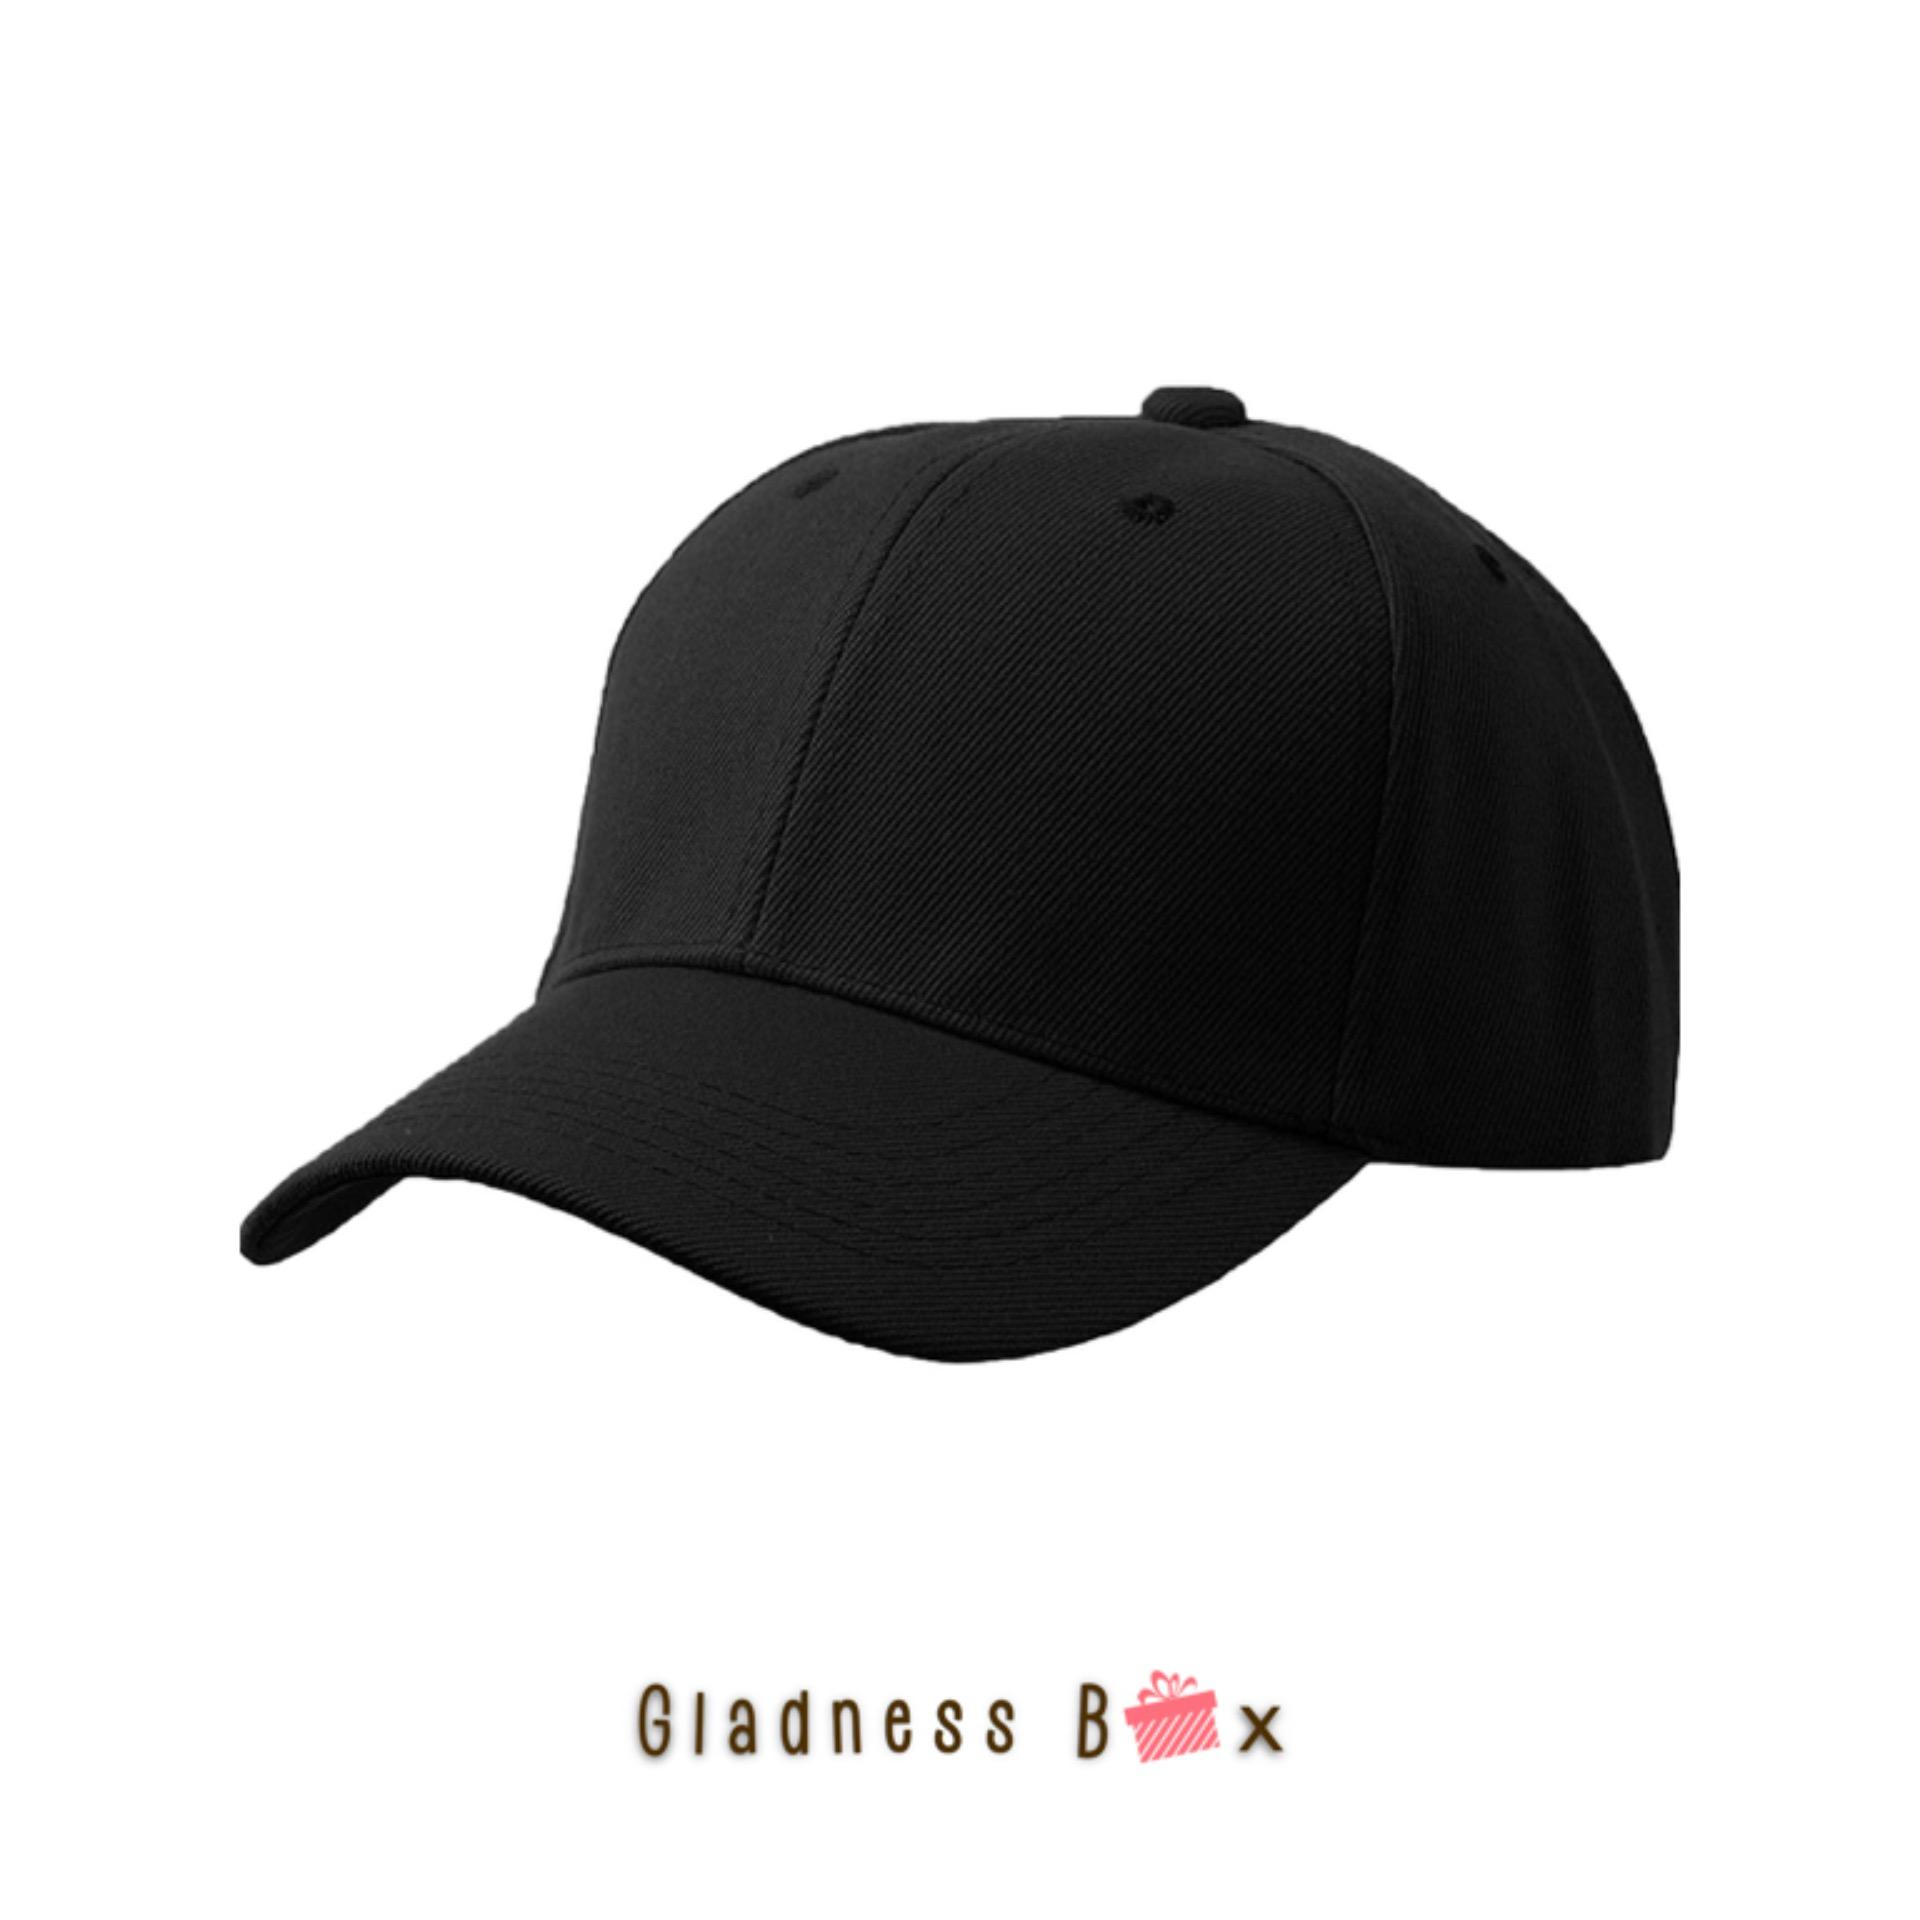 0cbe07293fe Gladness Box High Quality Plain Baseball Cap for Men Women Unisex